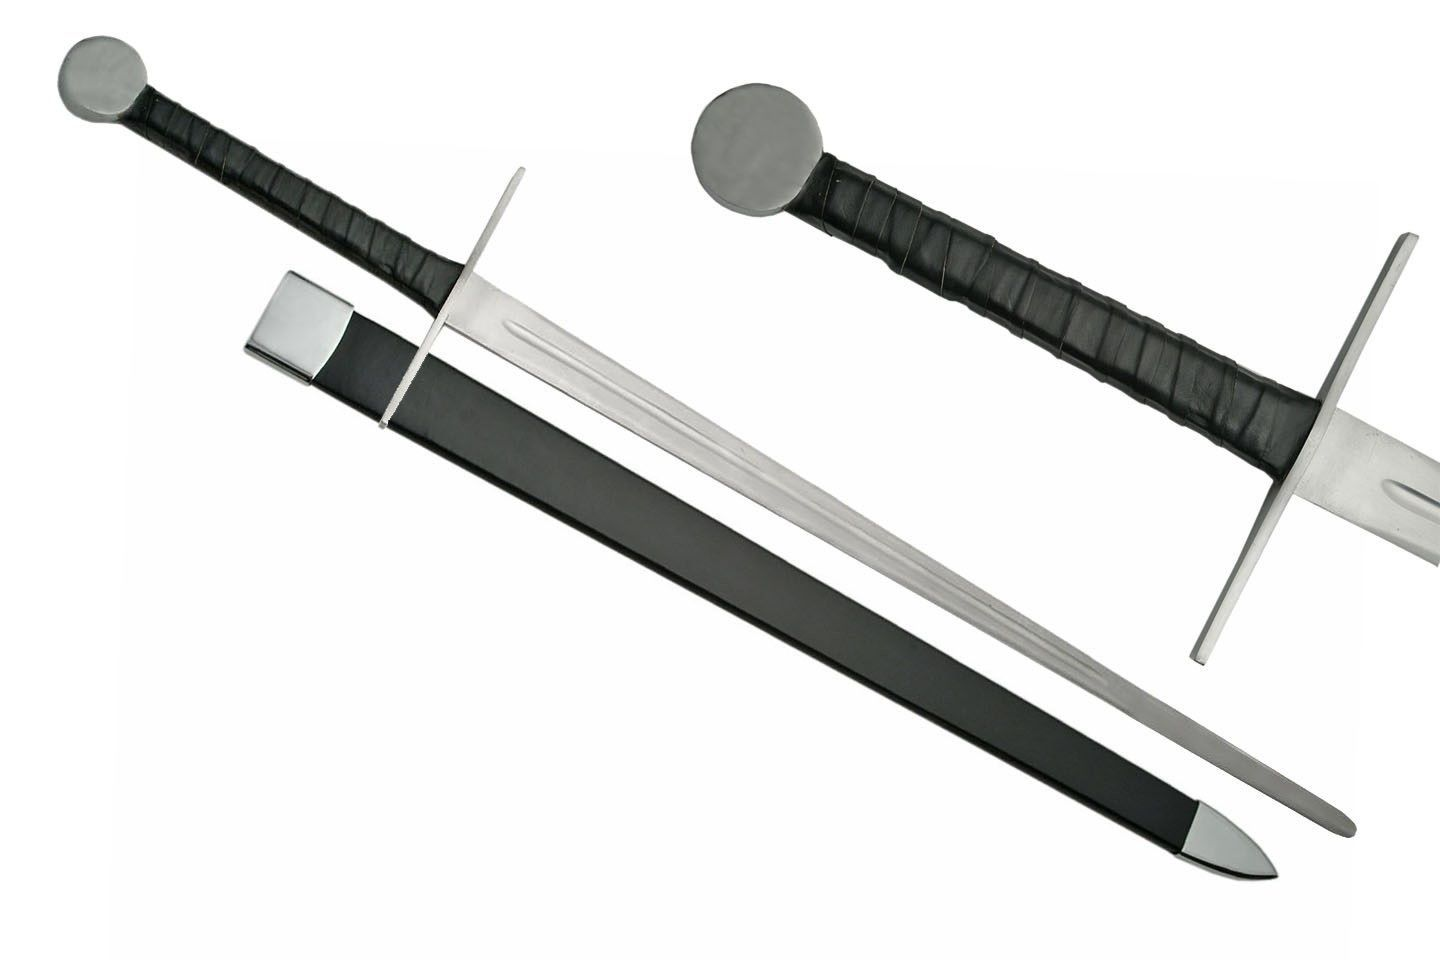 Battle Ready Medieval Arming sword